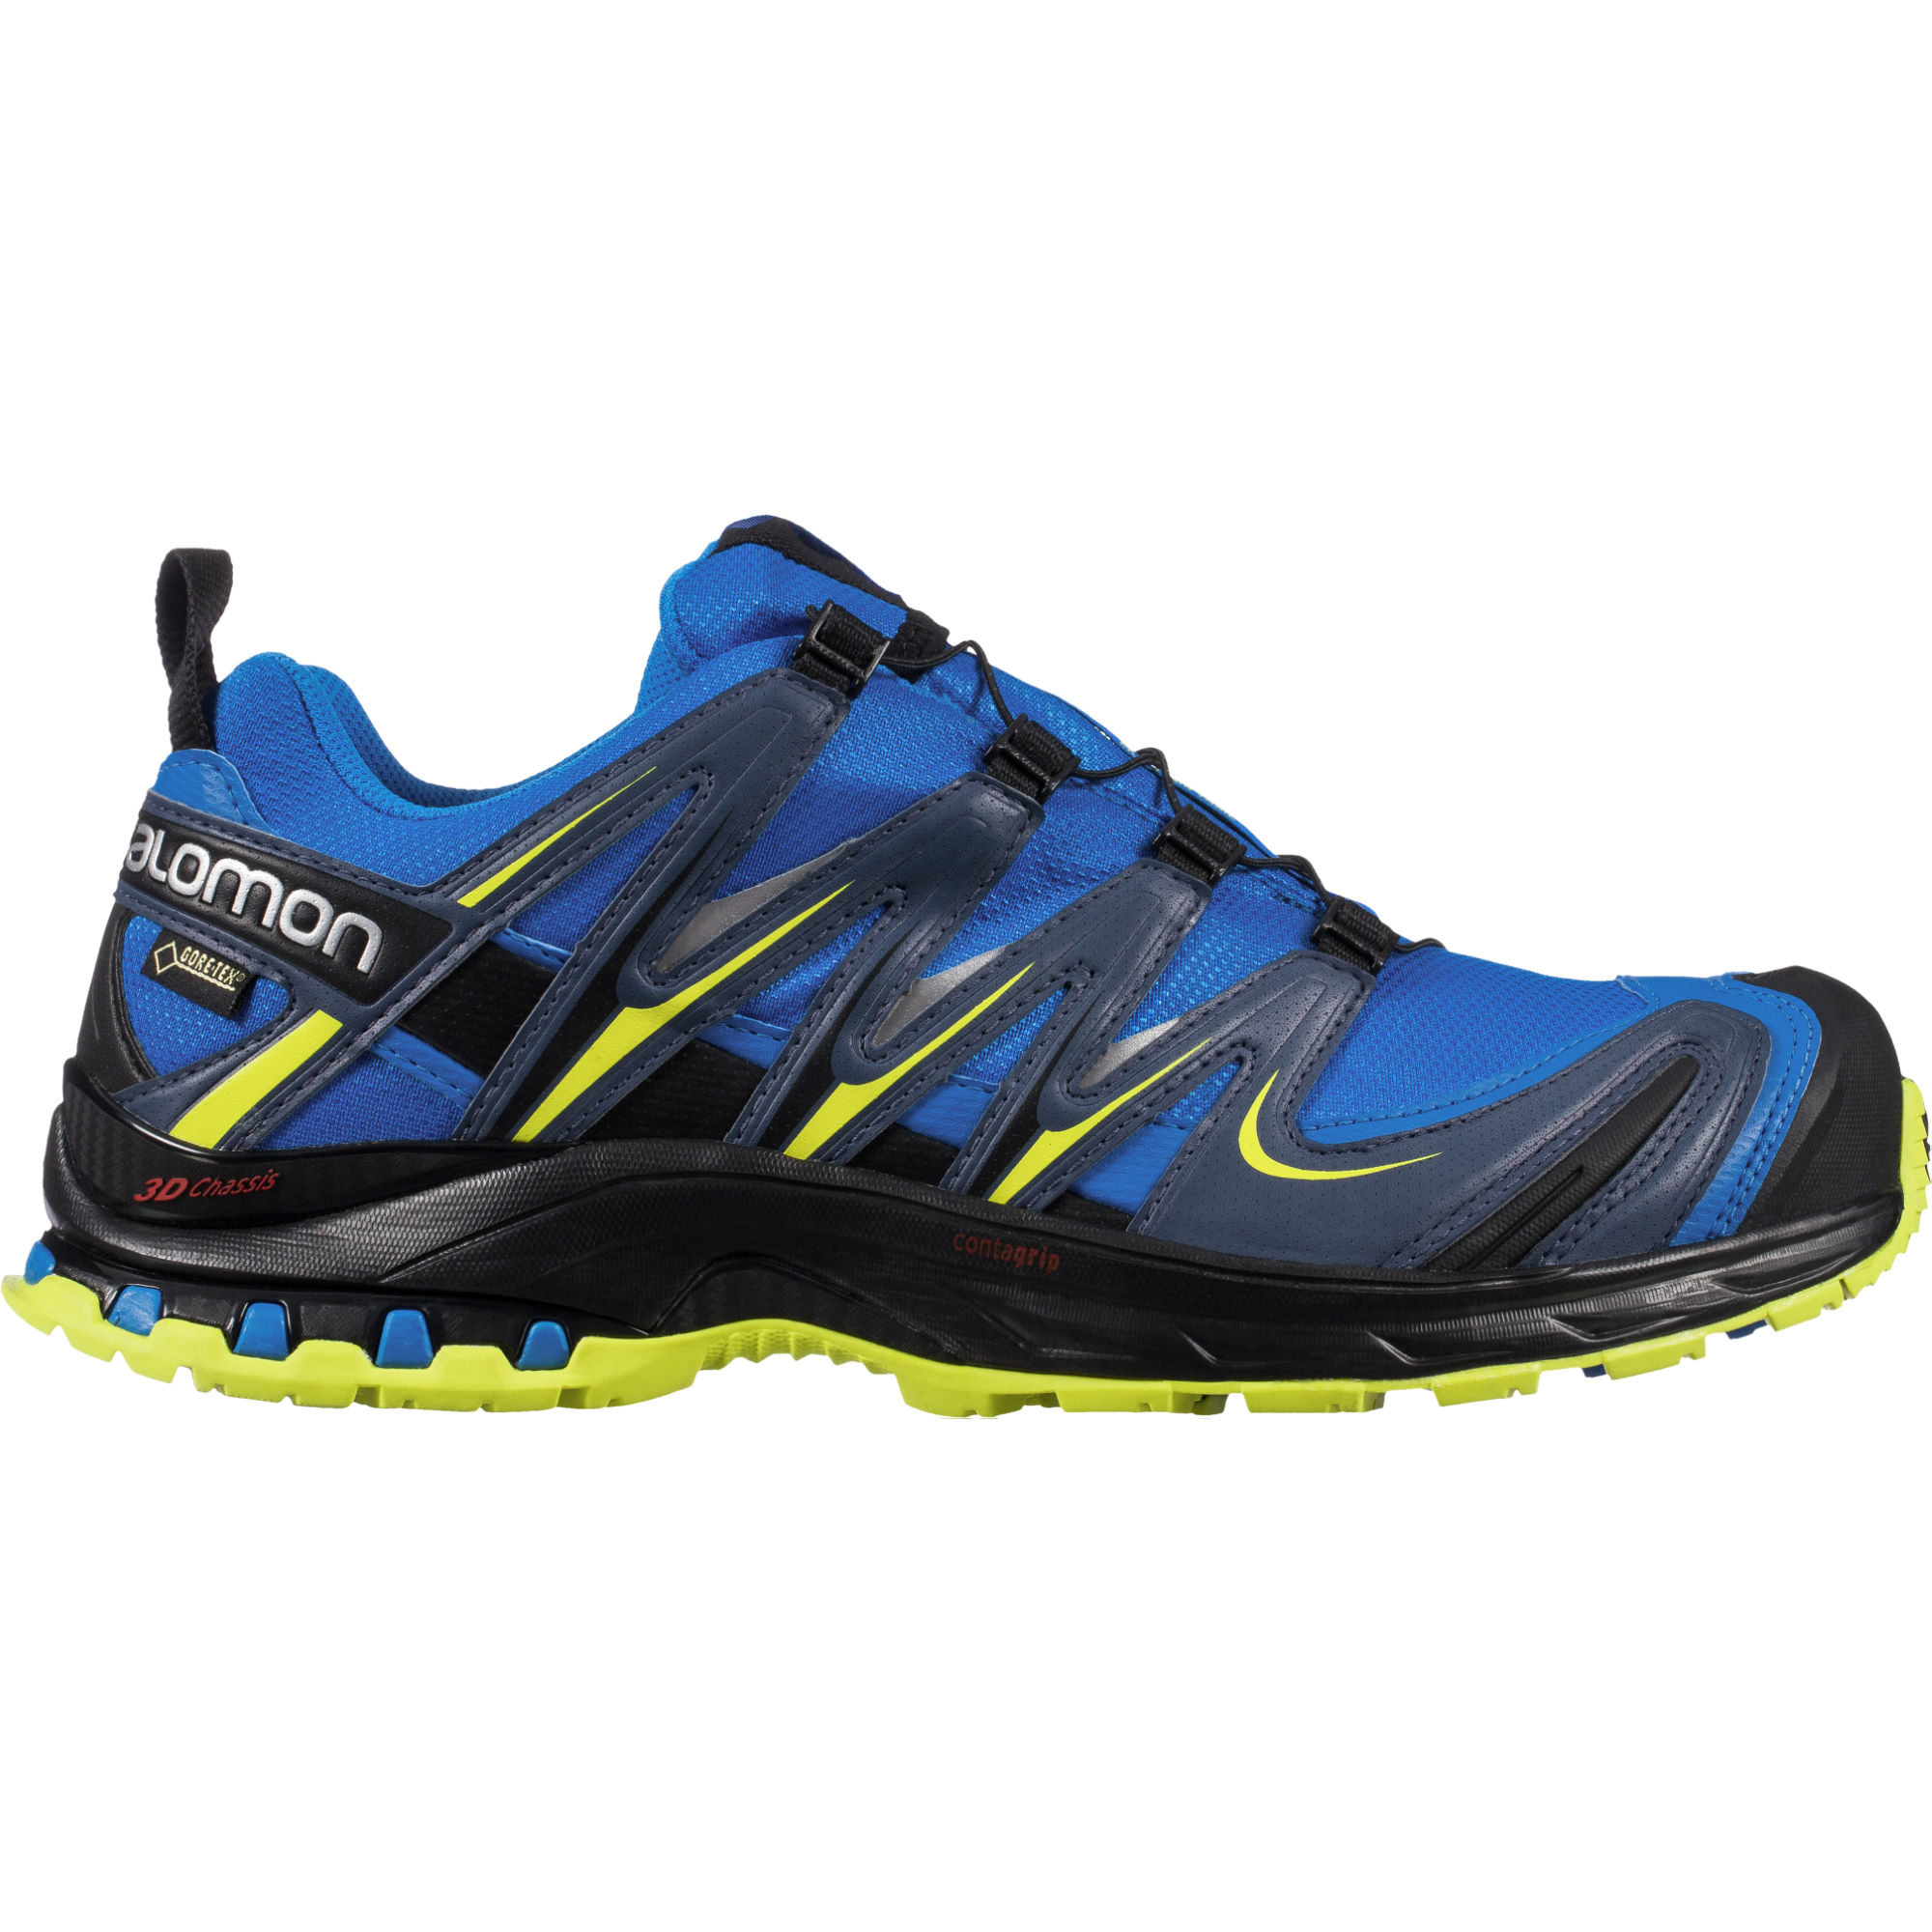 Salomon Gtx Running Shoes